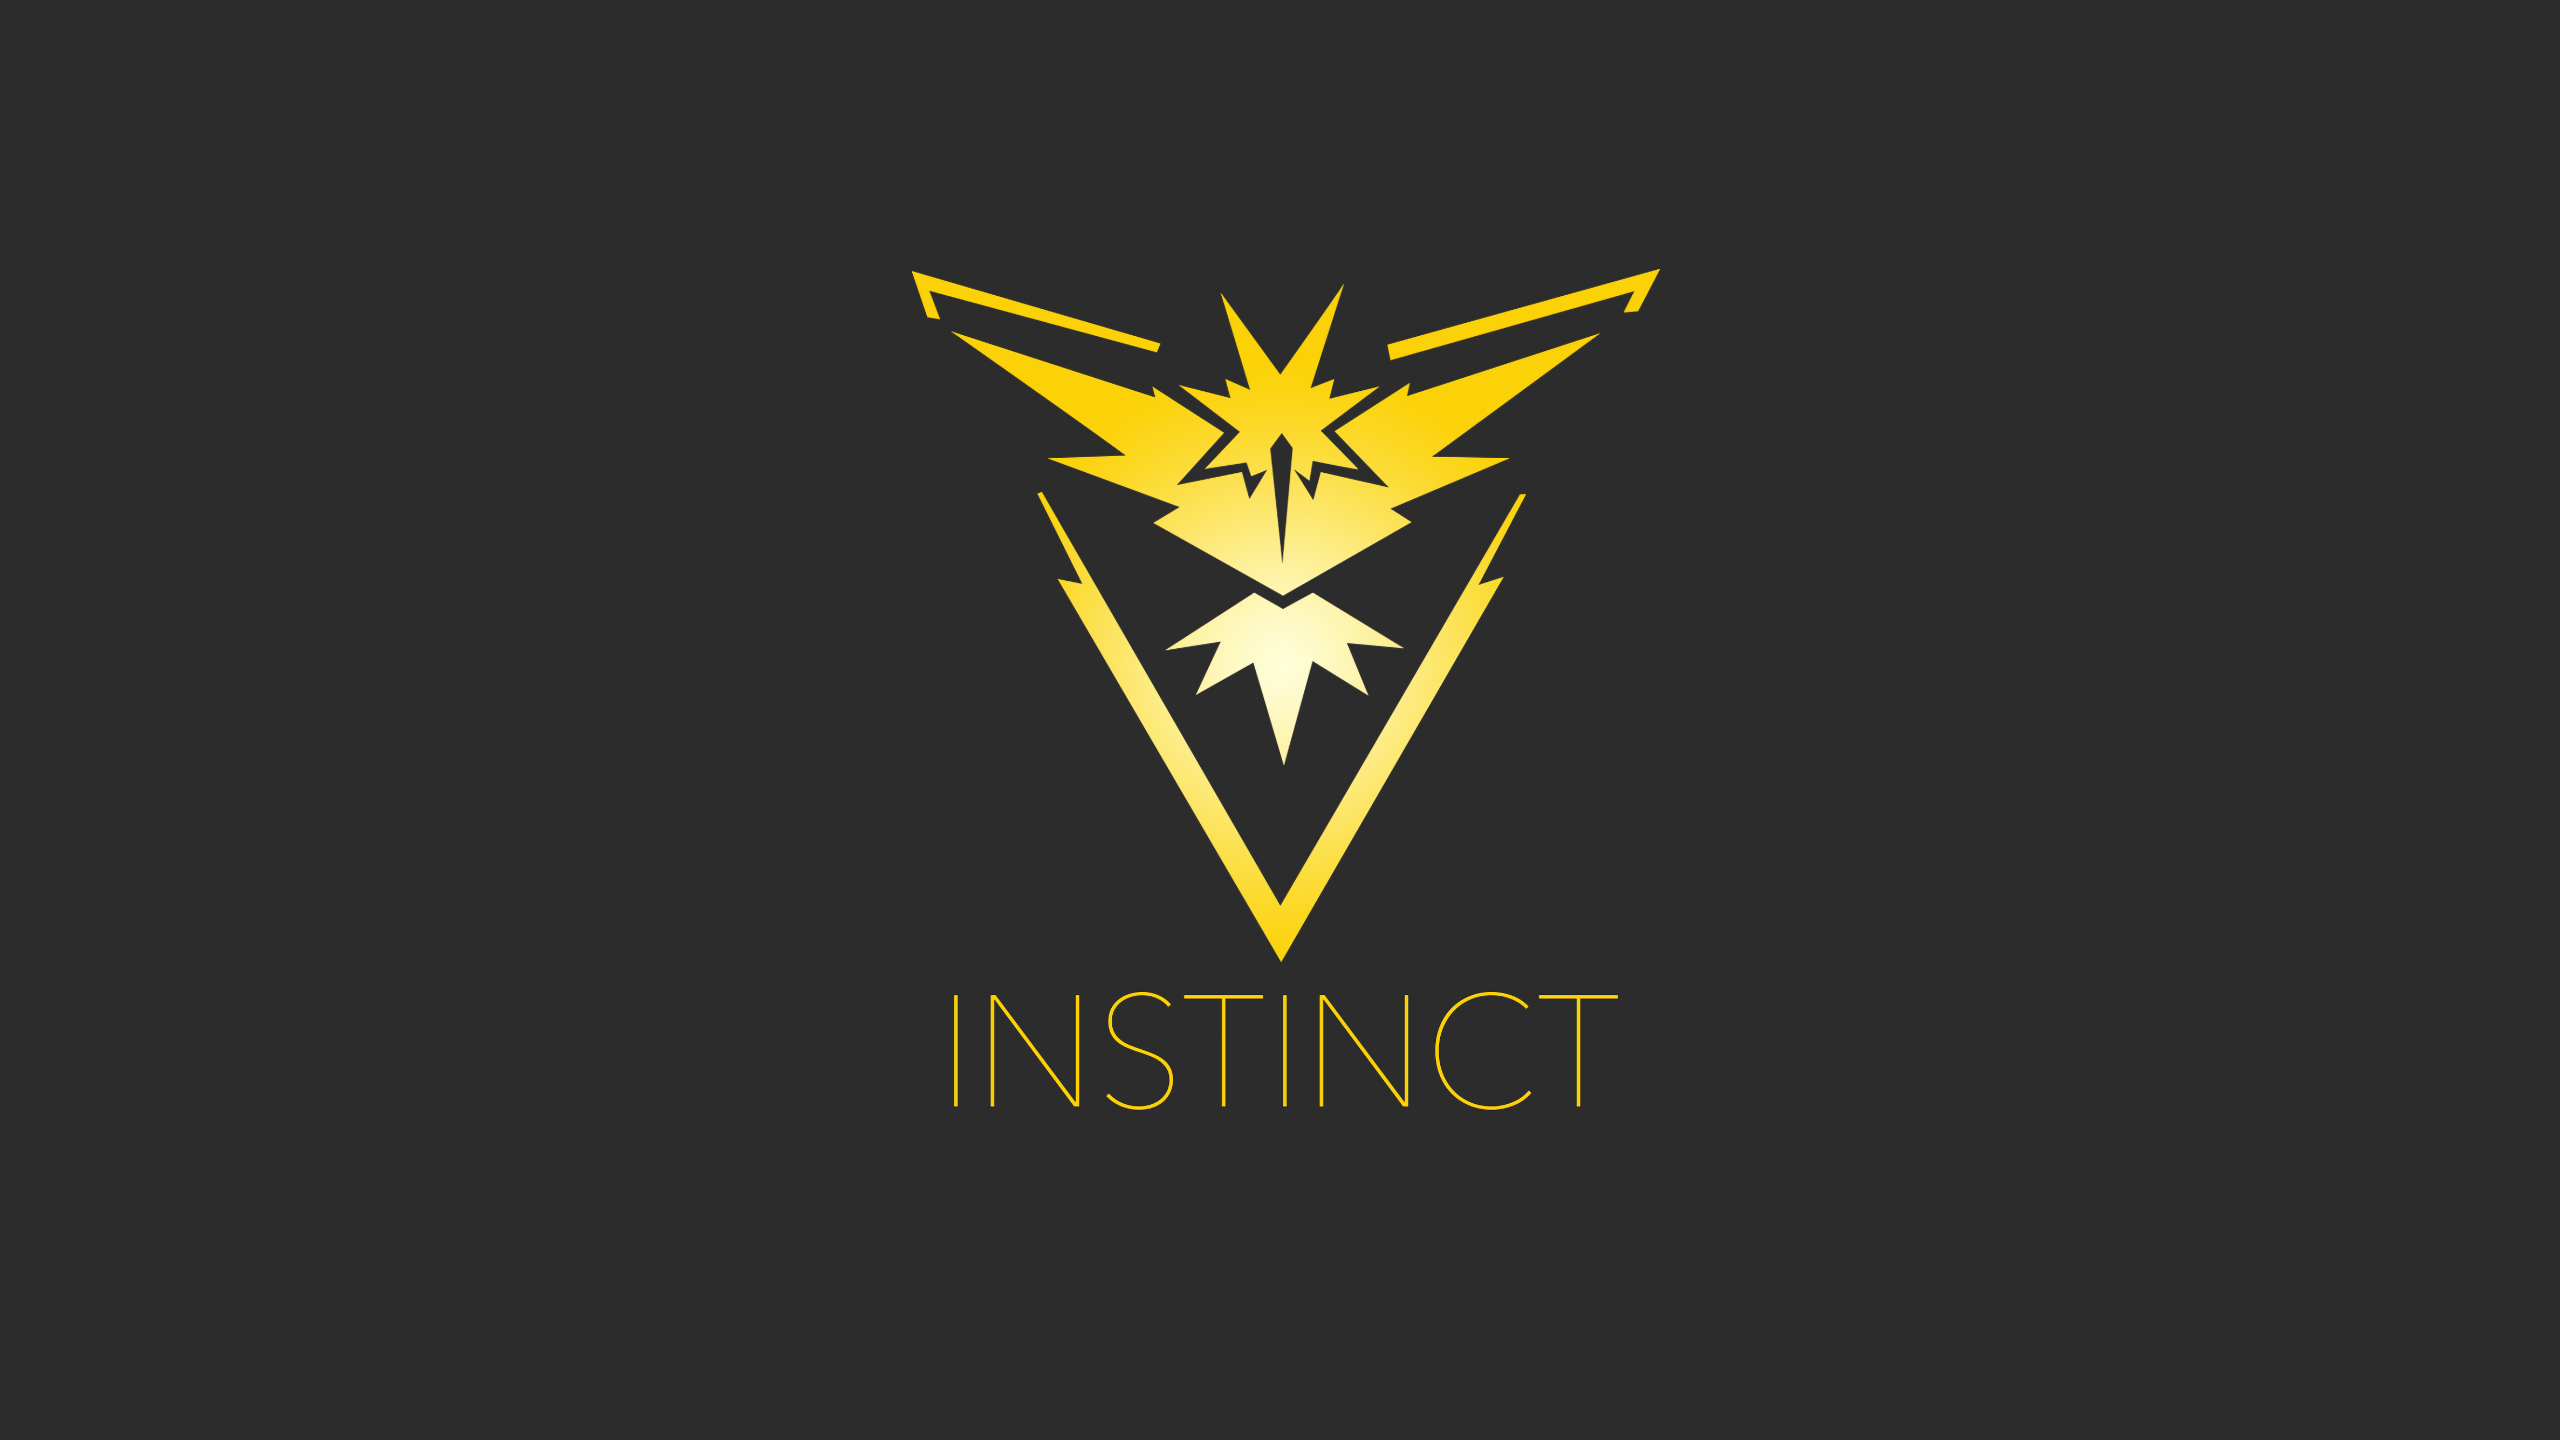 Team Instinct Simple Background